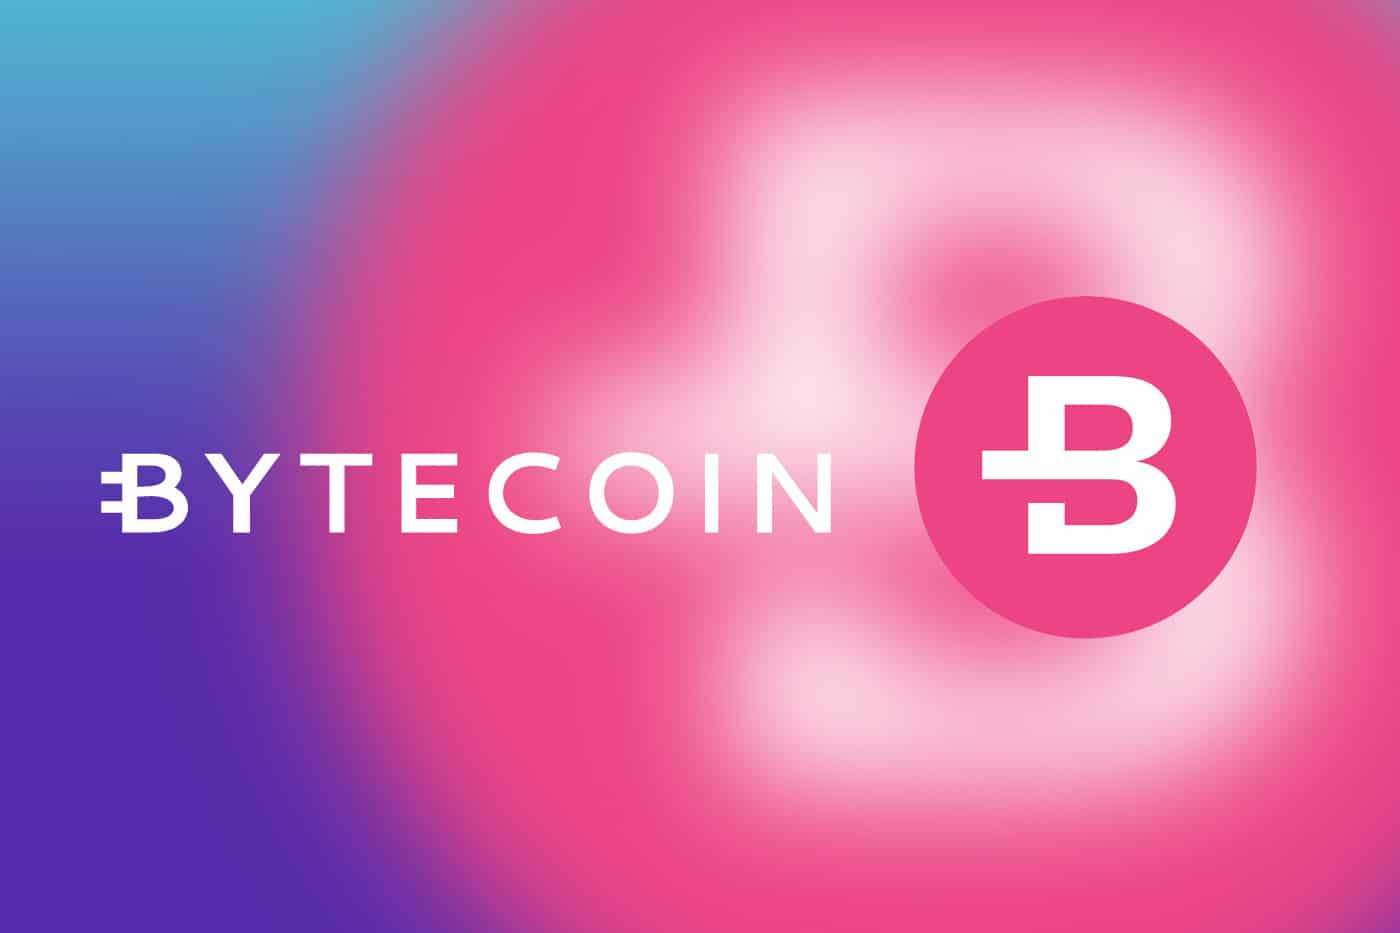 Photo of Bytecoin Woe in the Market, Team Bytecoin Pacifies Fears of Investors